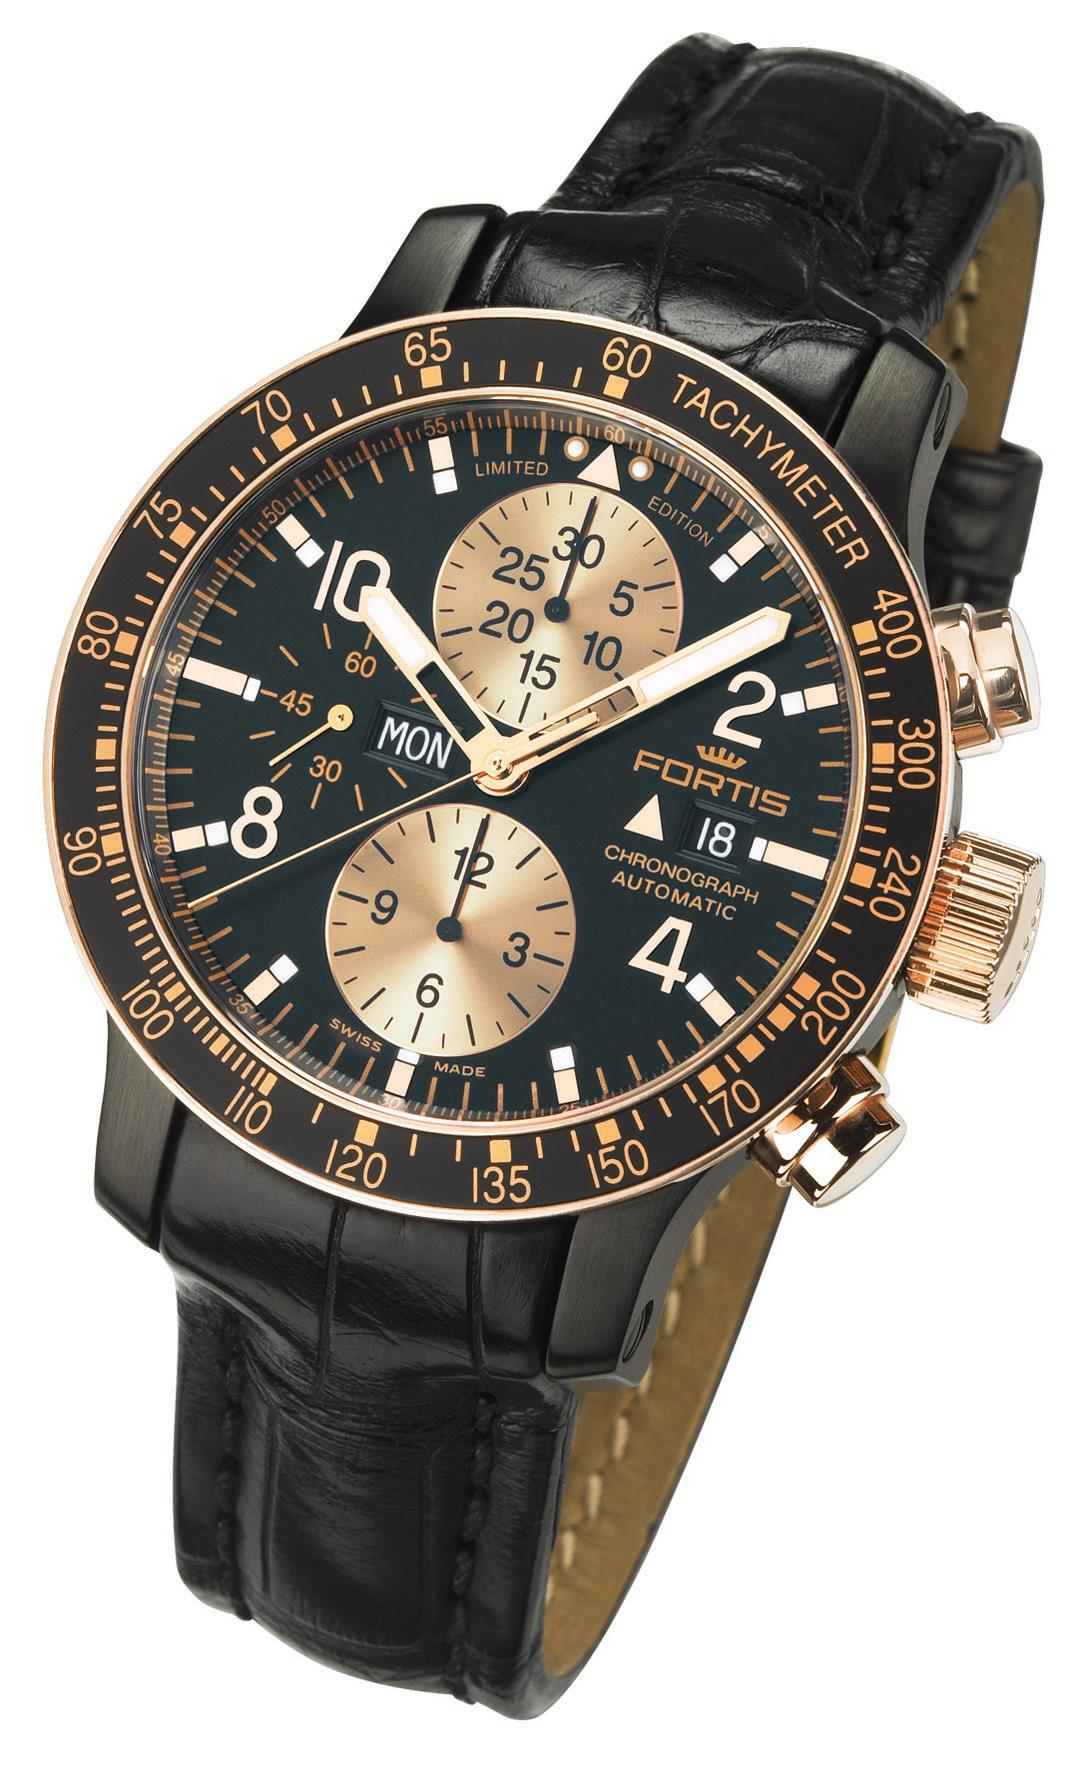 Fortis Mens 665.13.19 L.01 B-42 Stratoliner 100th Anniversary Limited Edition Black Dial Chronograph Watch